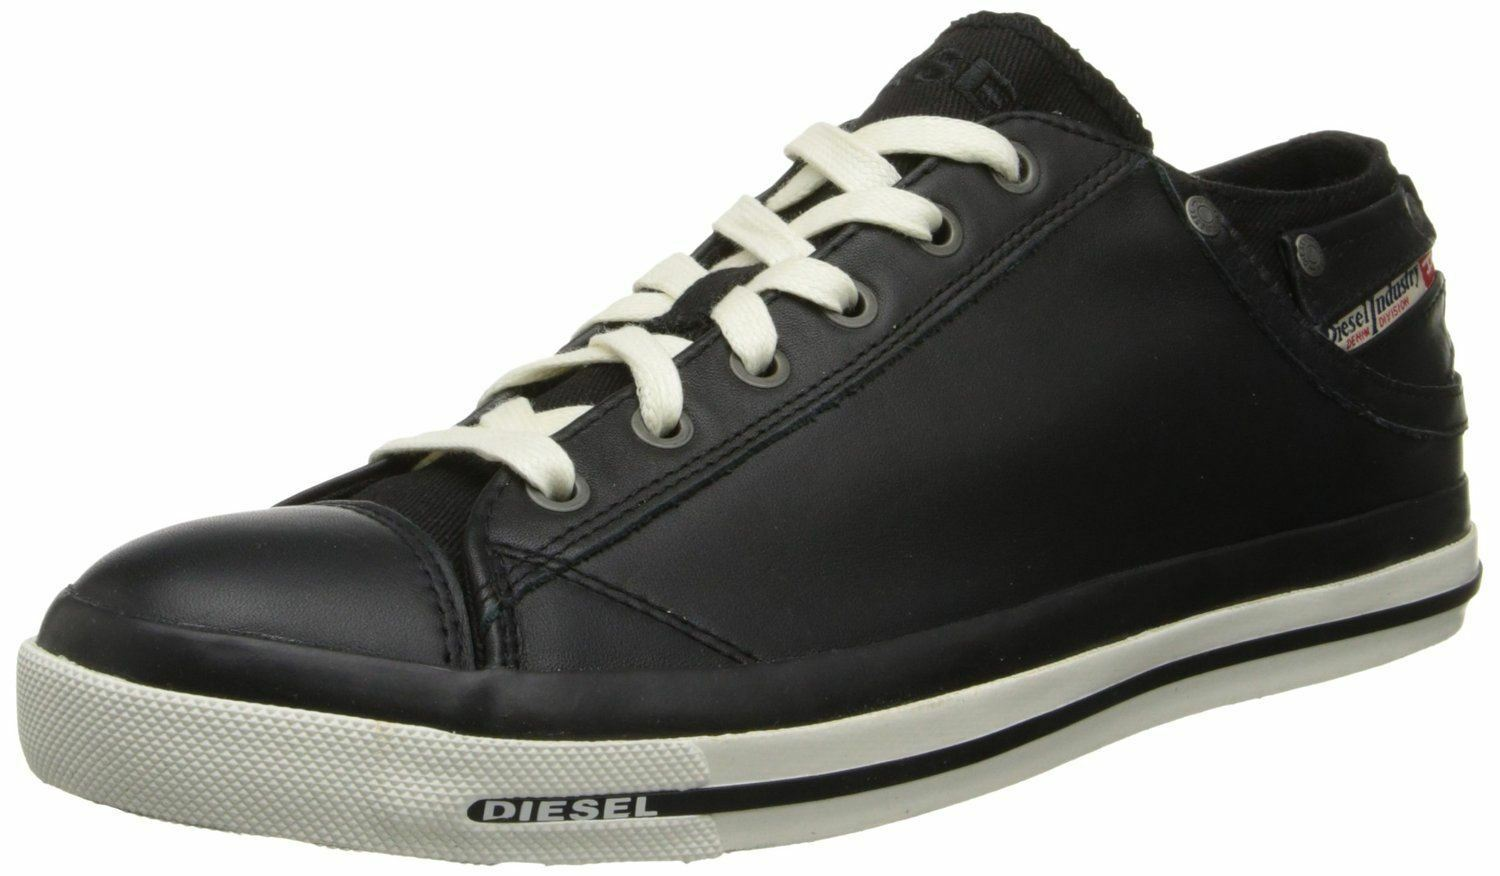 Diesel Exposure iv Black White New Womens Leather Lo Top Trainers Shoes Boots